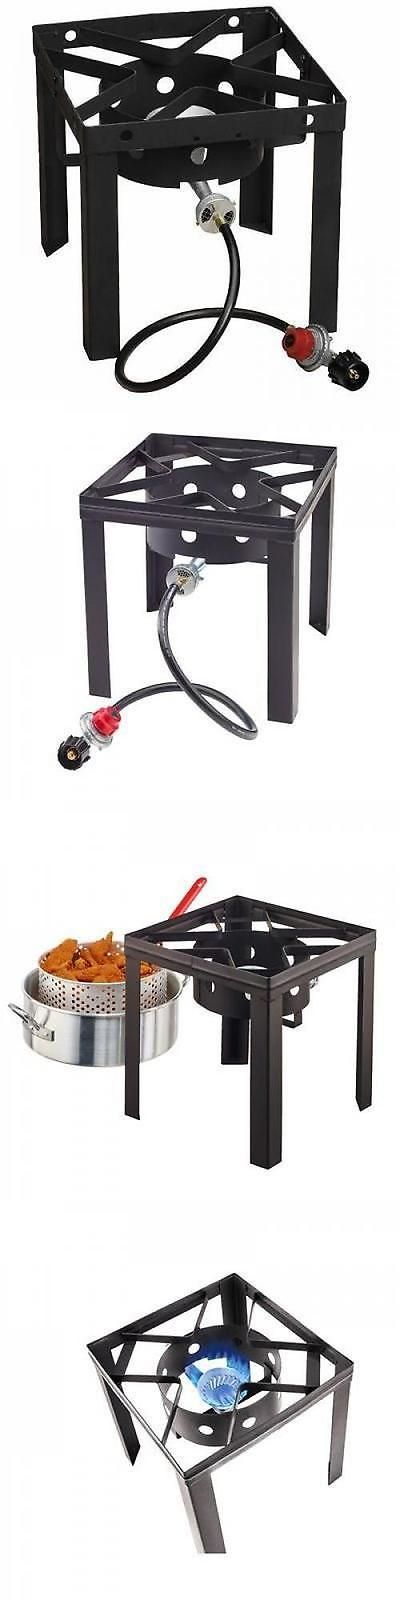 Other Camping Cooking Supplies 16036: Gas Stove Propane Burner Portable Steel Fryer Stand Outdoor Camping Cooker New -> BUY IT NOW ONLY: $47.91 on eBay!